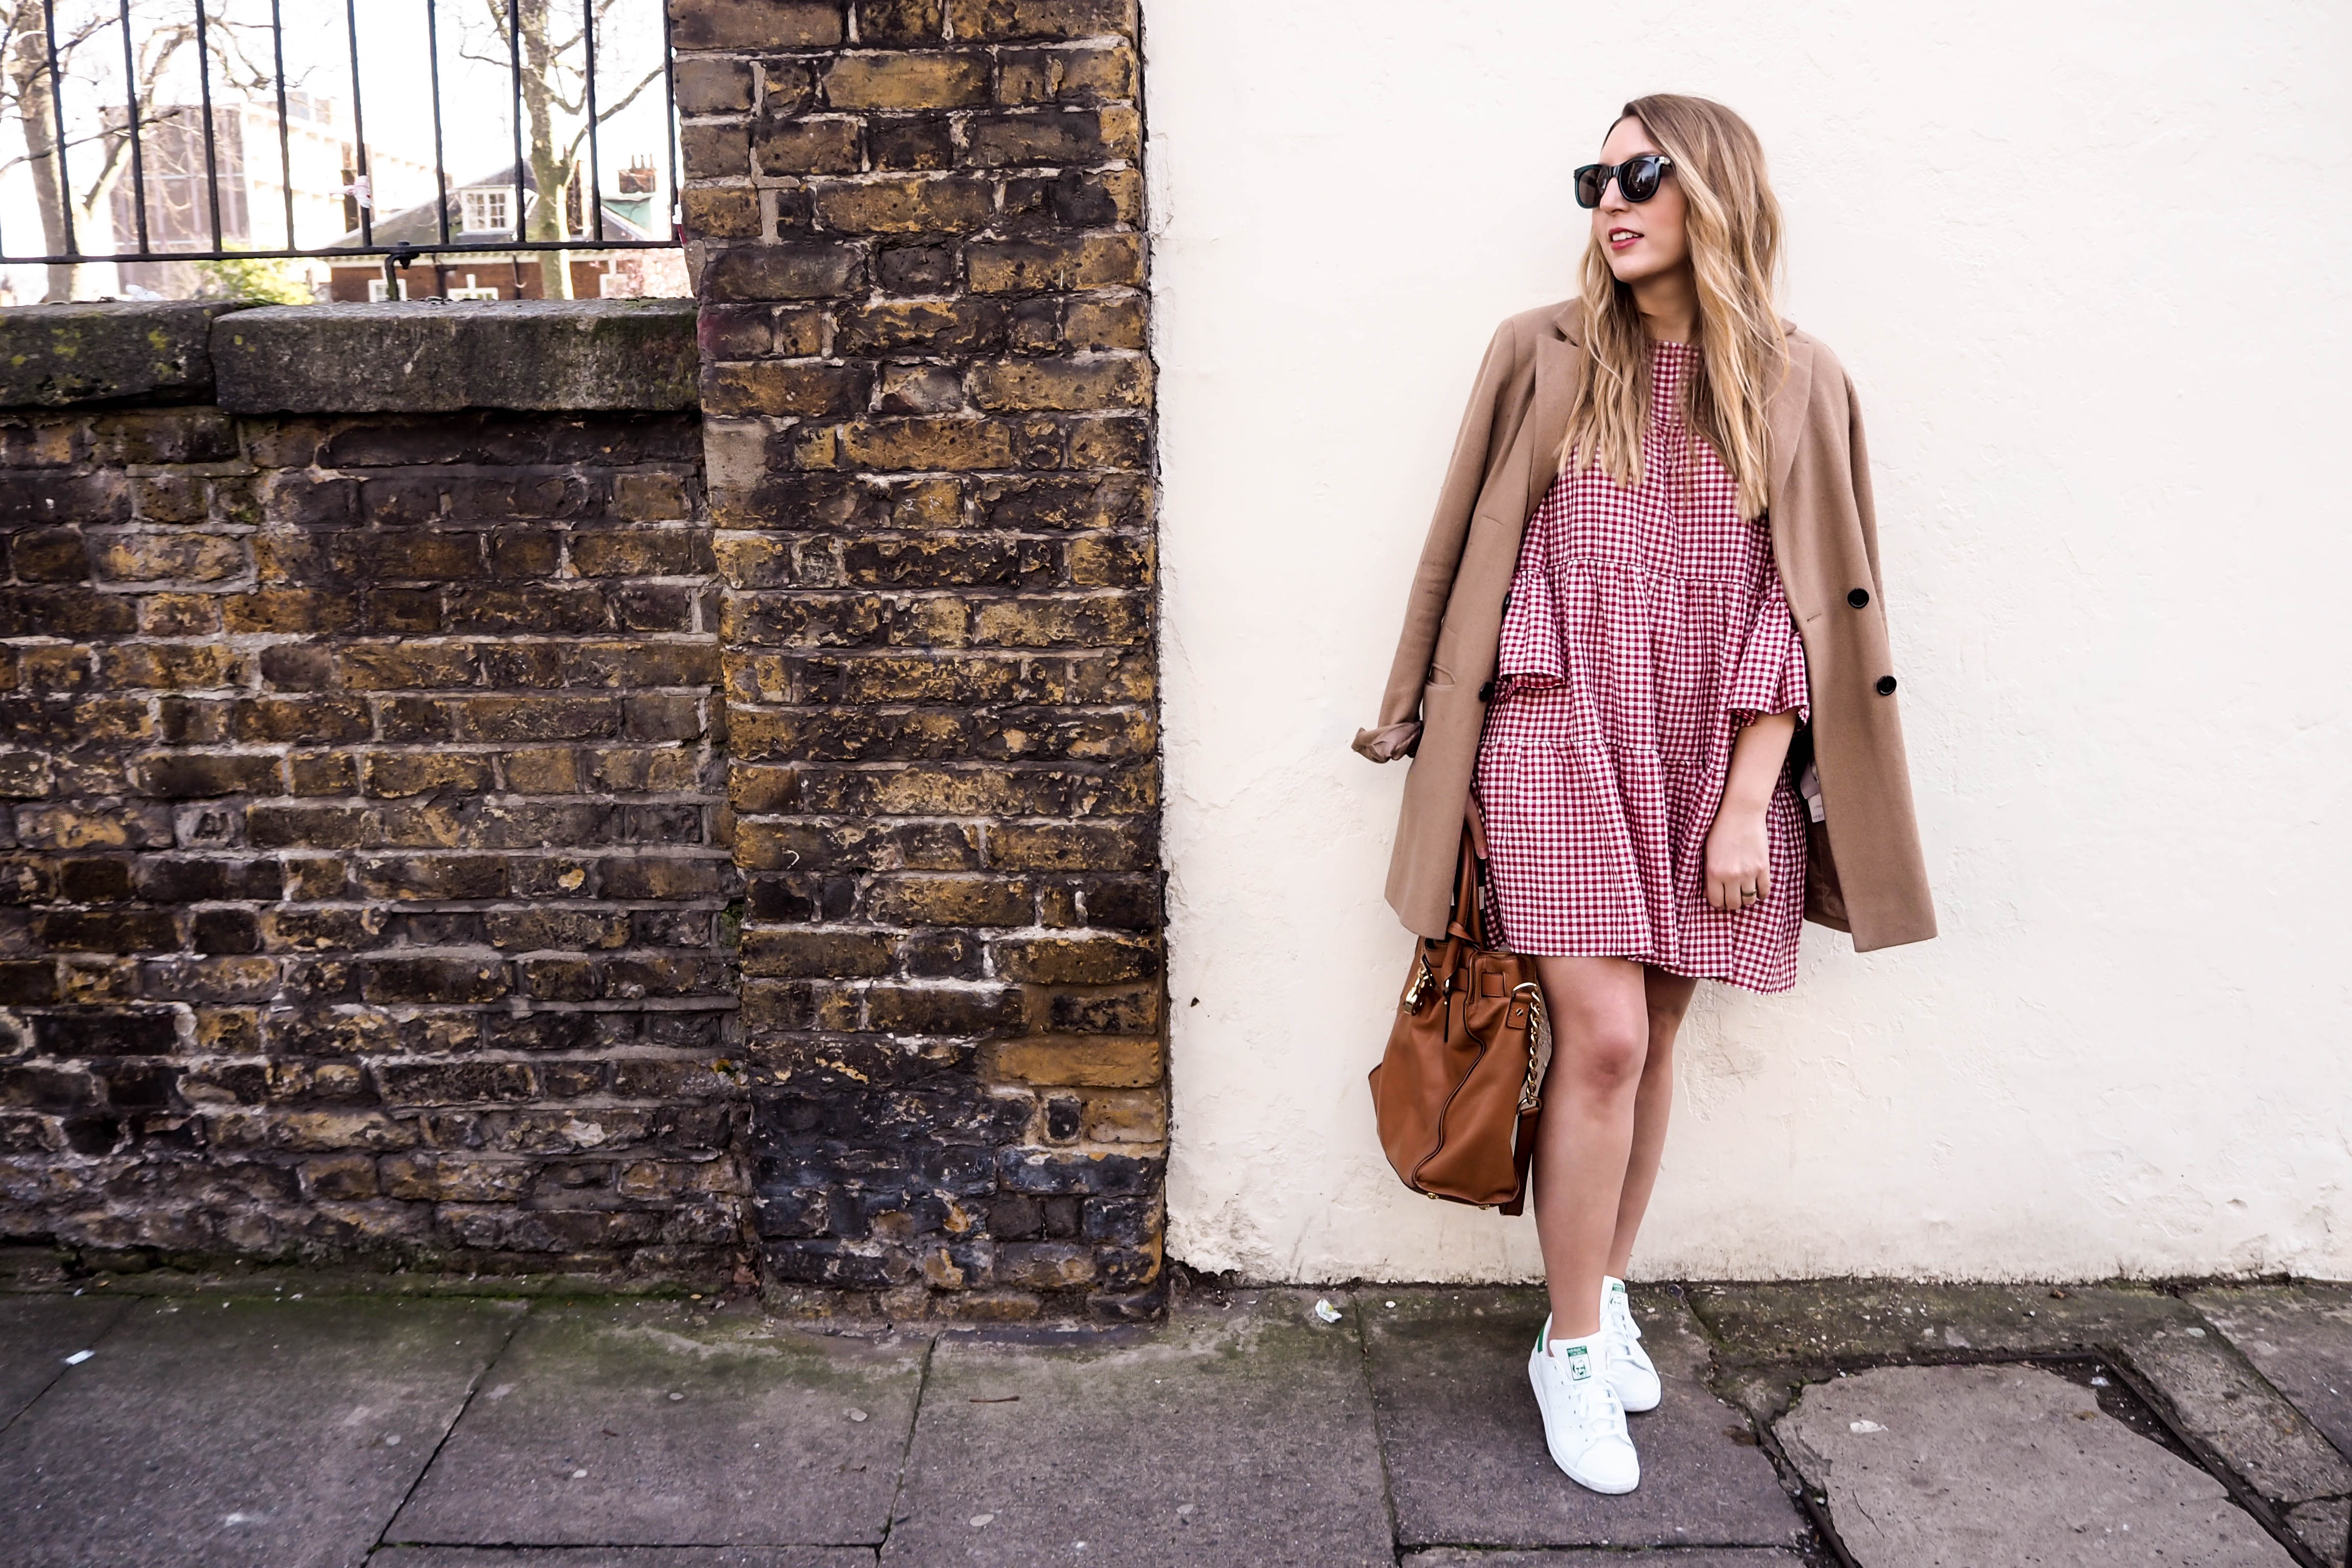 Zara gingham dress | Michael Kors satchel | Adidas white trainers | ASOS coat | Wolf & Stag